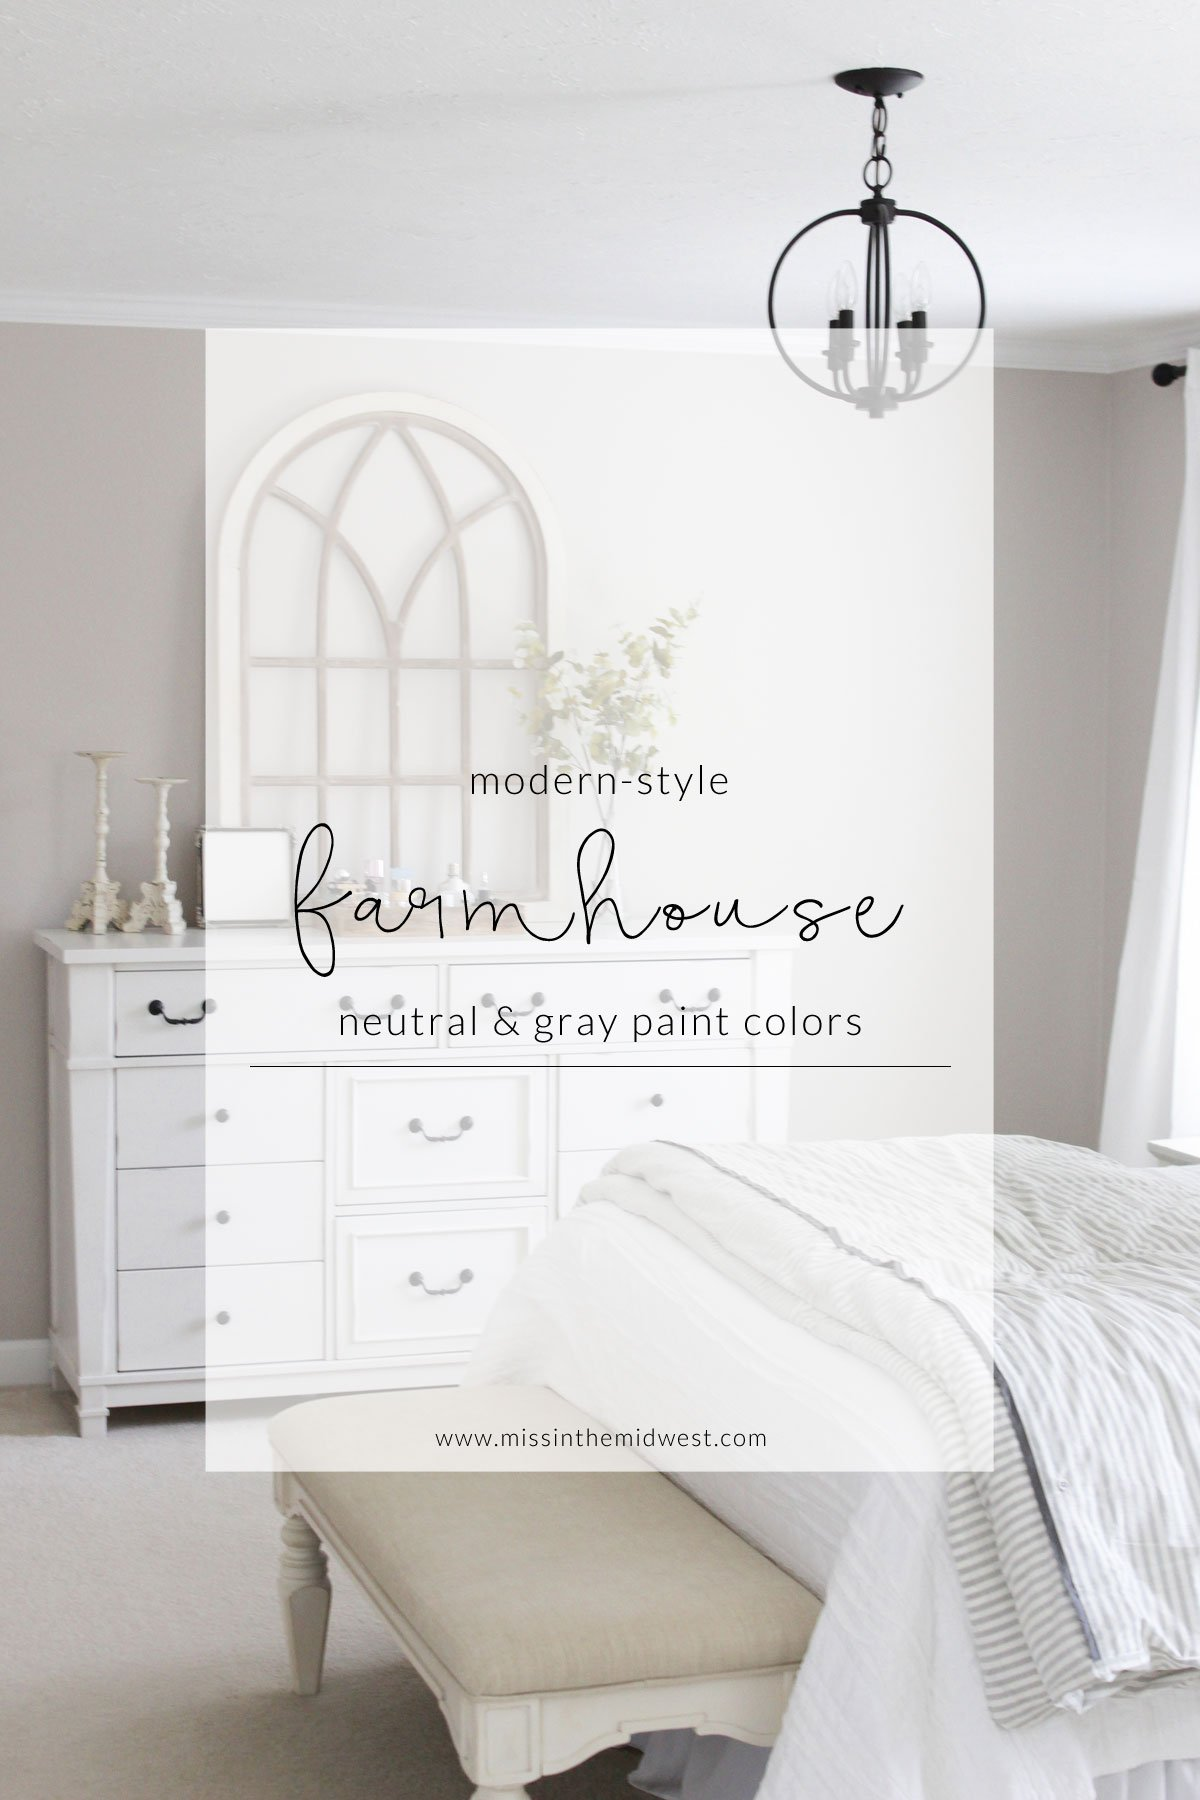 Paint Colors in Our Modern-Style Farmhouse